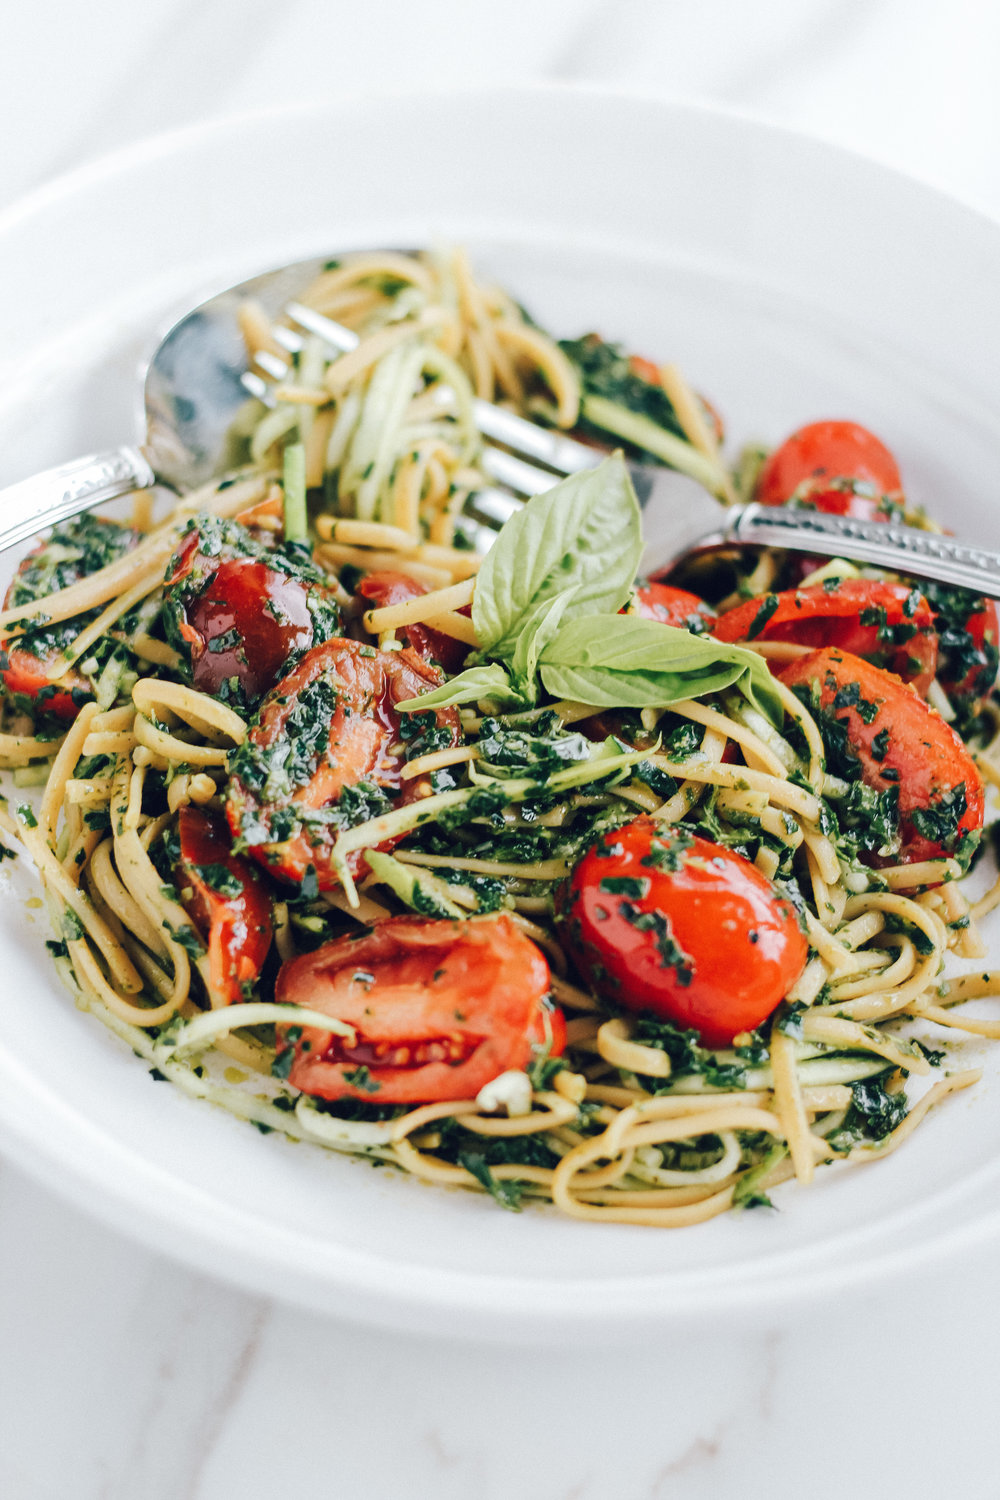 Basil and Kale Pesto Linguine Pasta with Zoodles